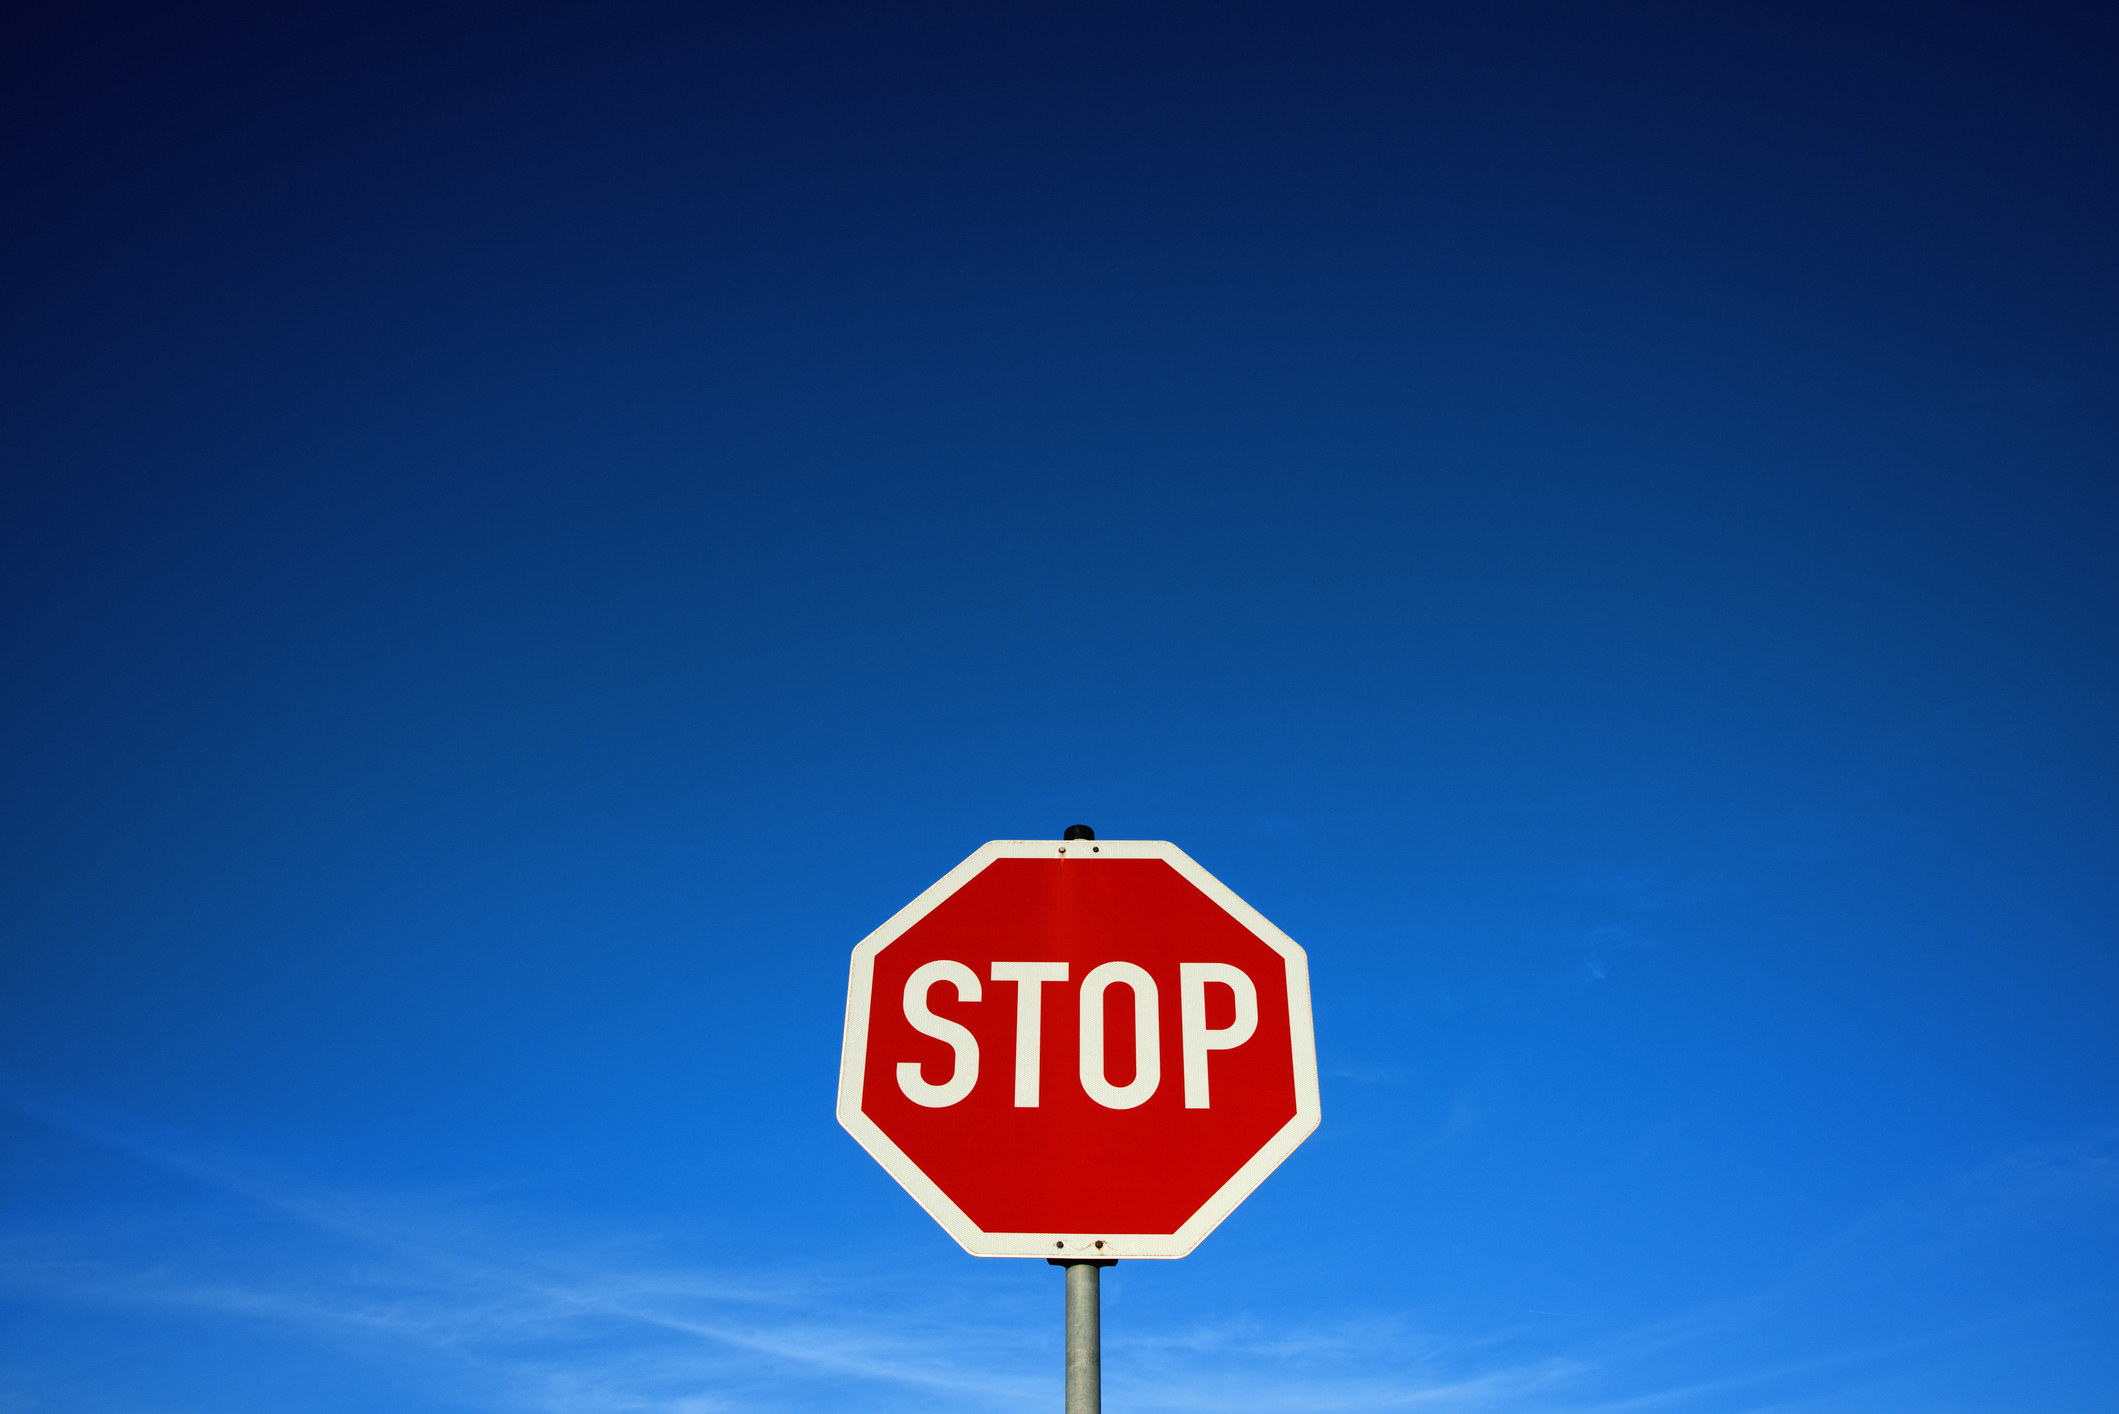 A stop sign at the bottom of the frame with a big empty sky behind it